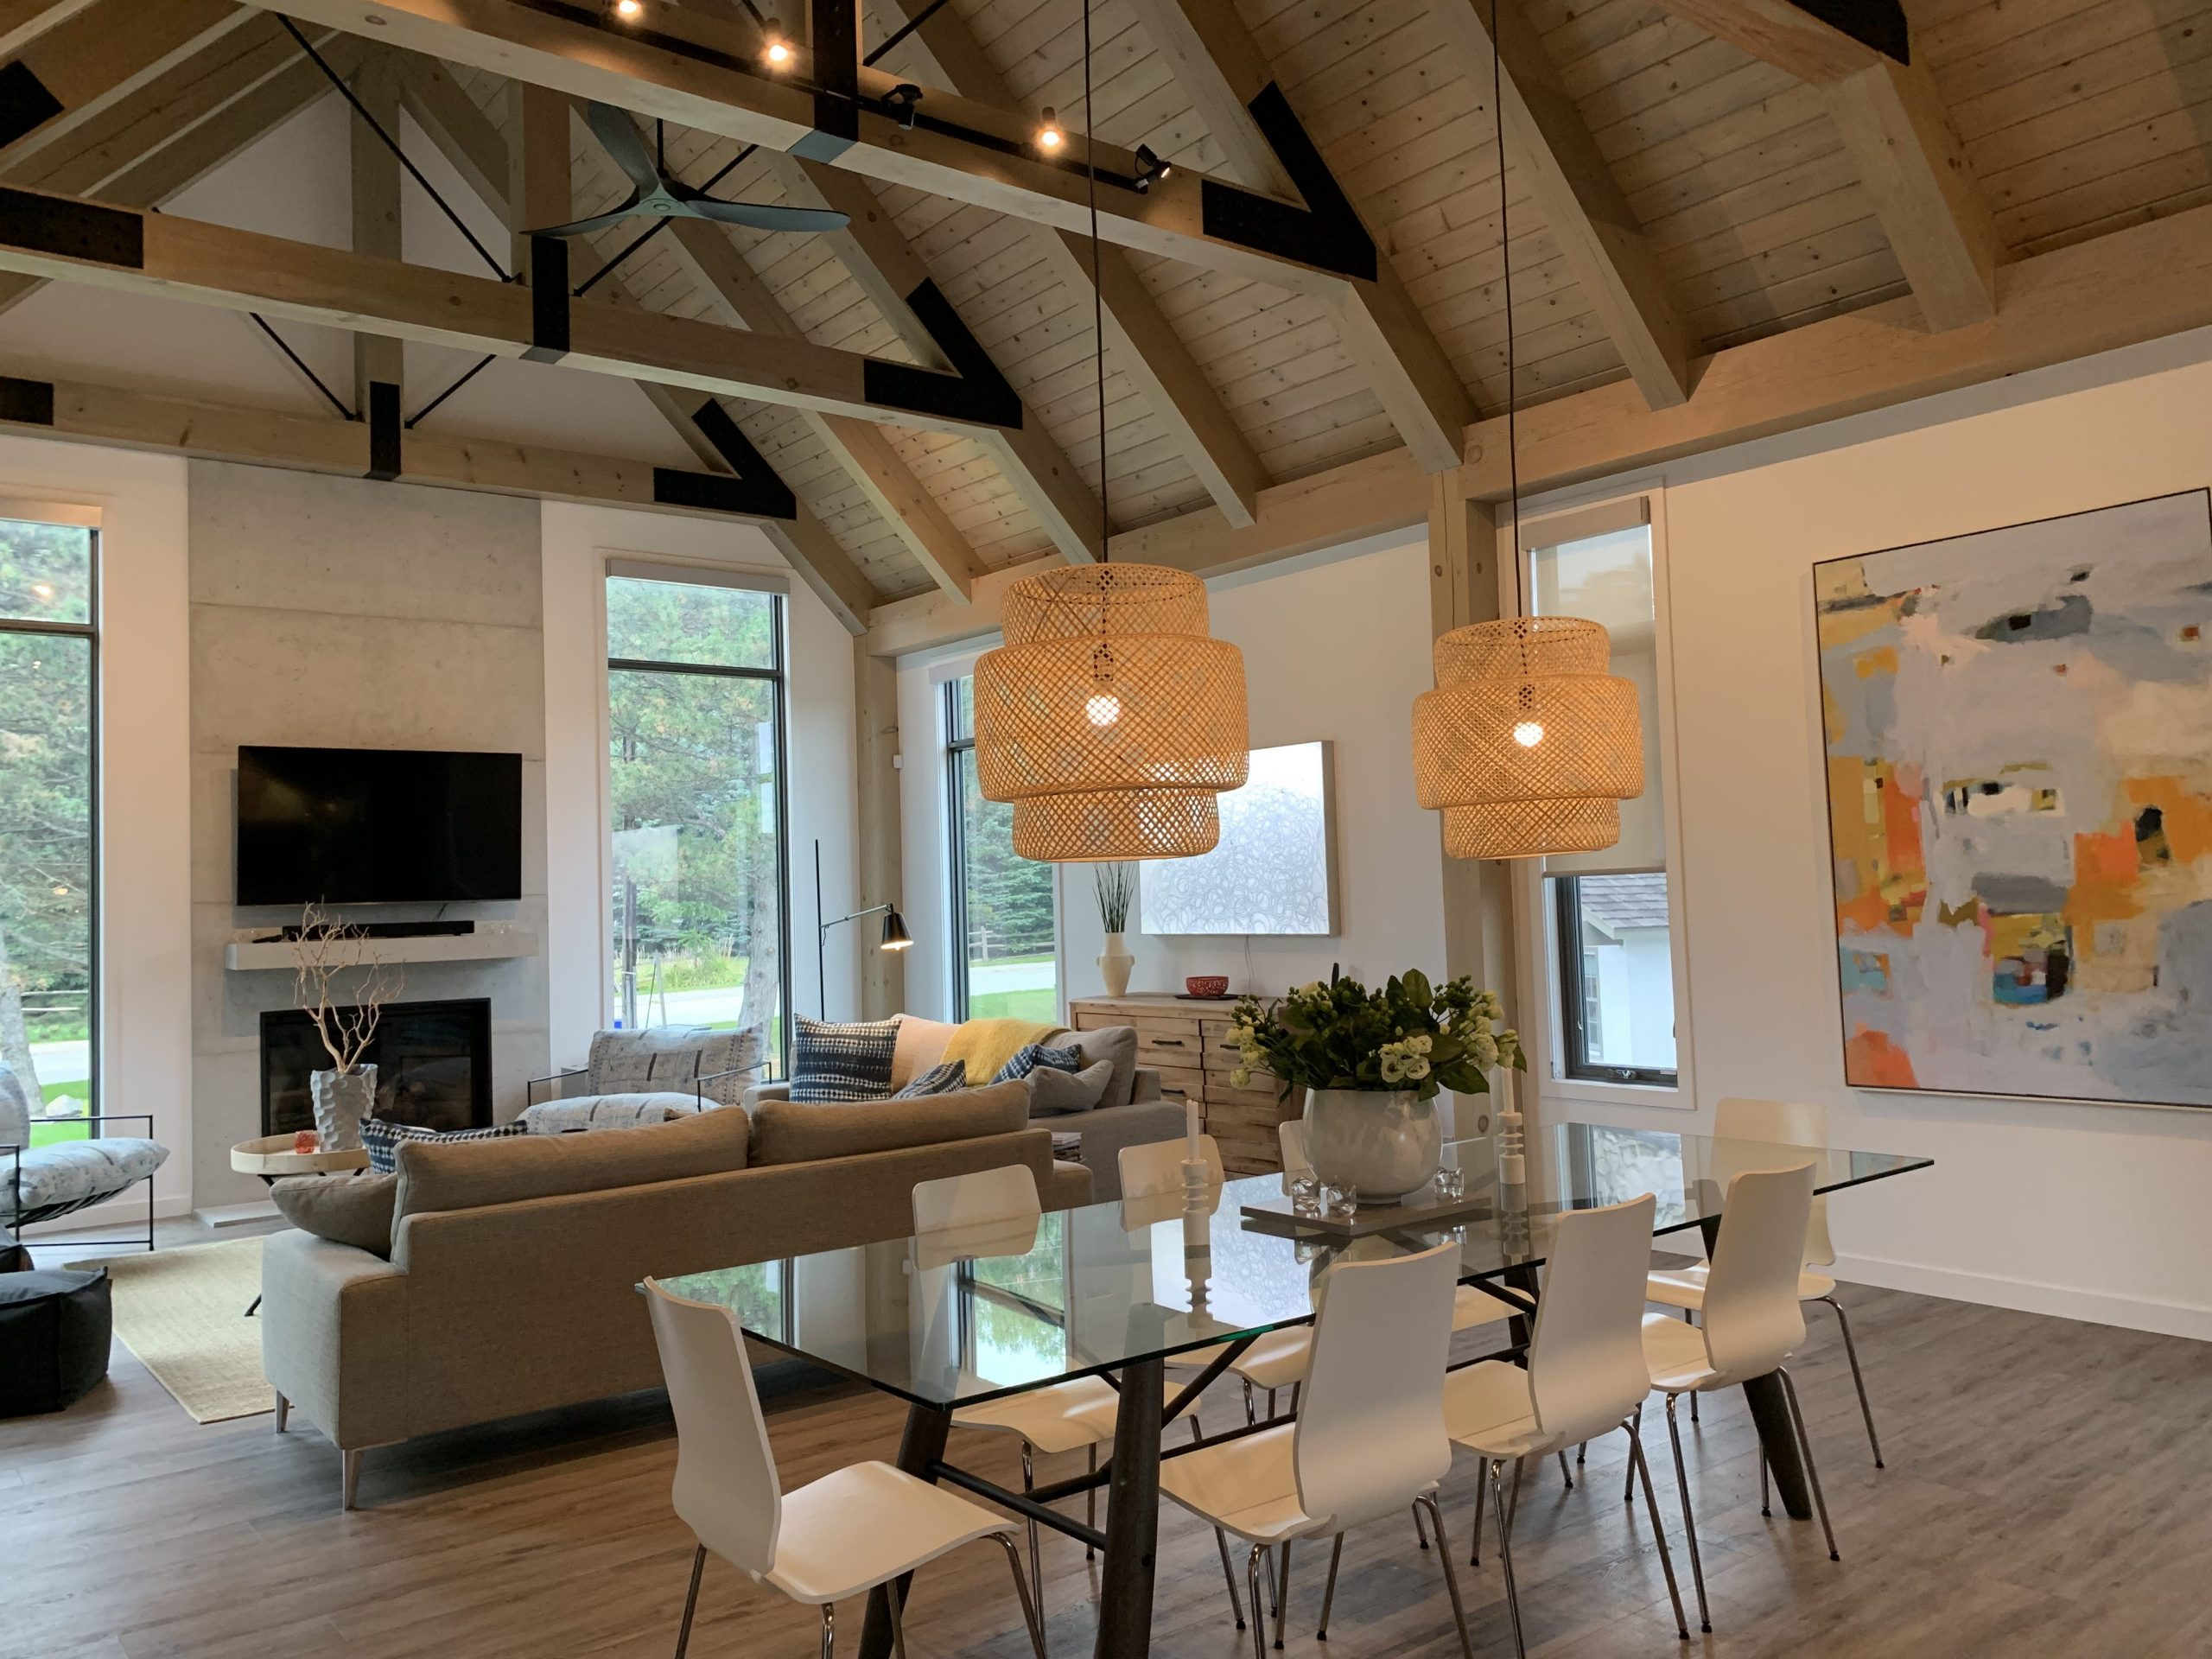 Normerica Timber Frame, Interior, Kitchen, Dining Room, Open Concept, Modern, Contemporary